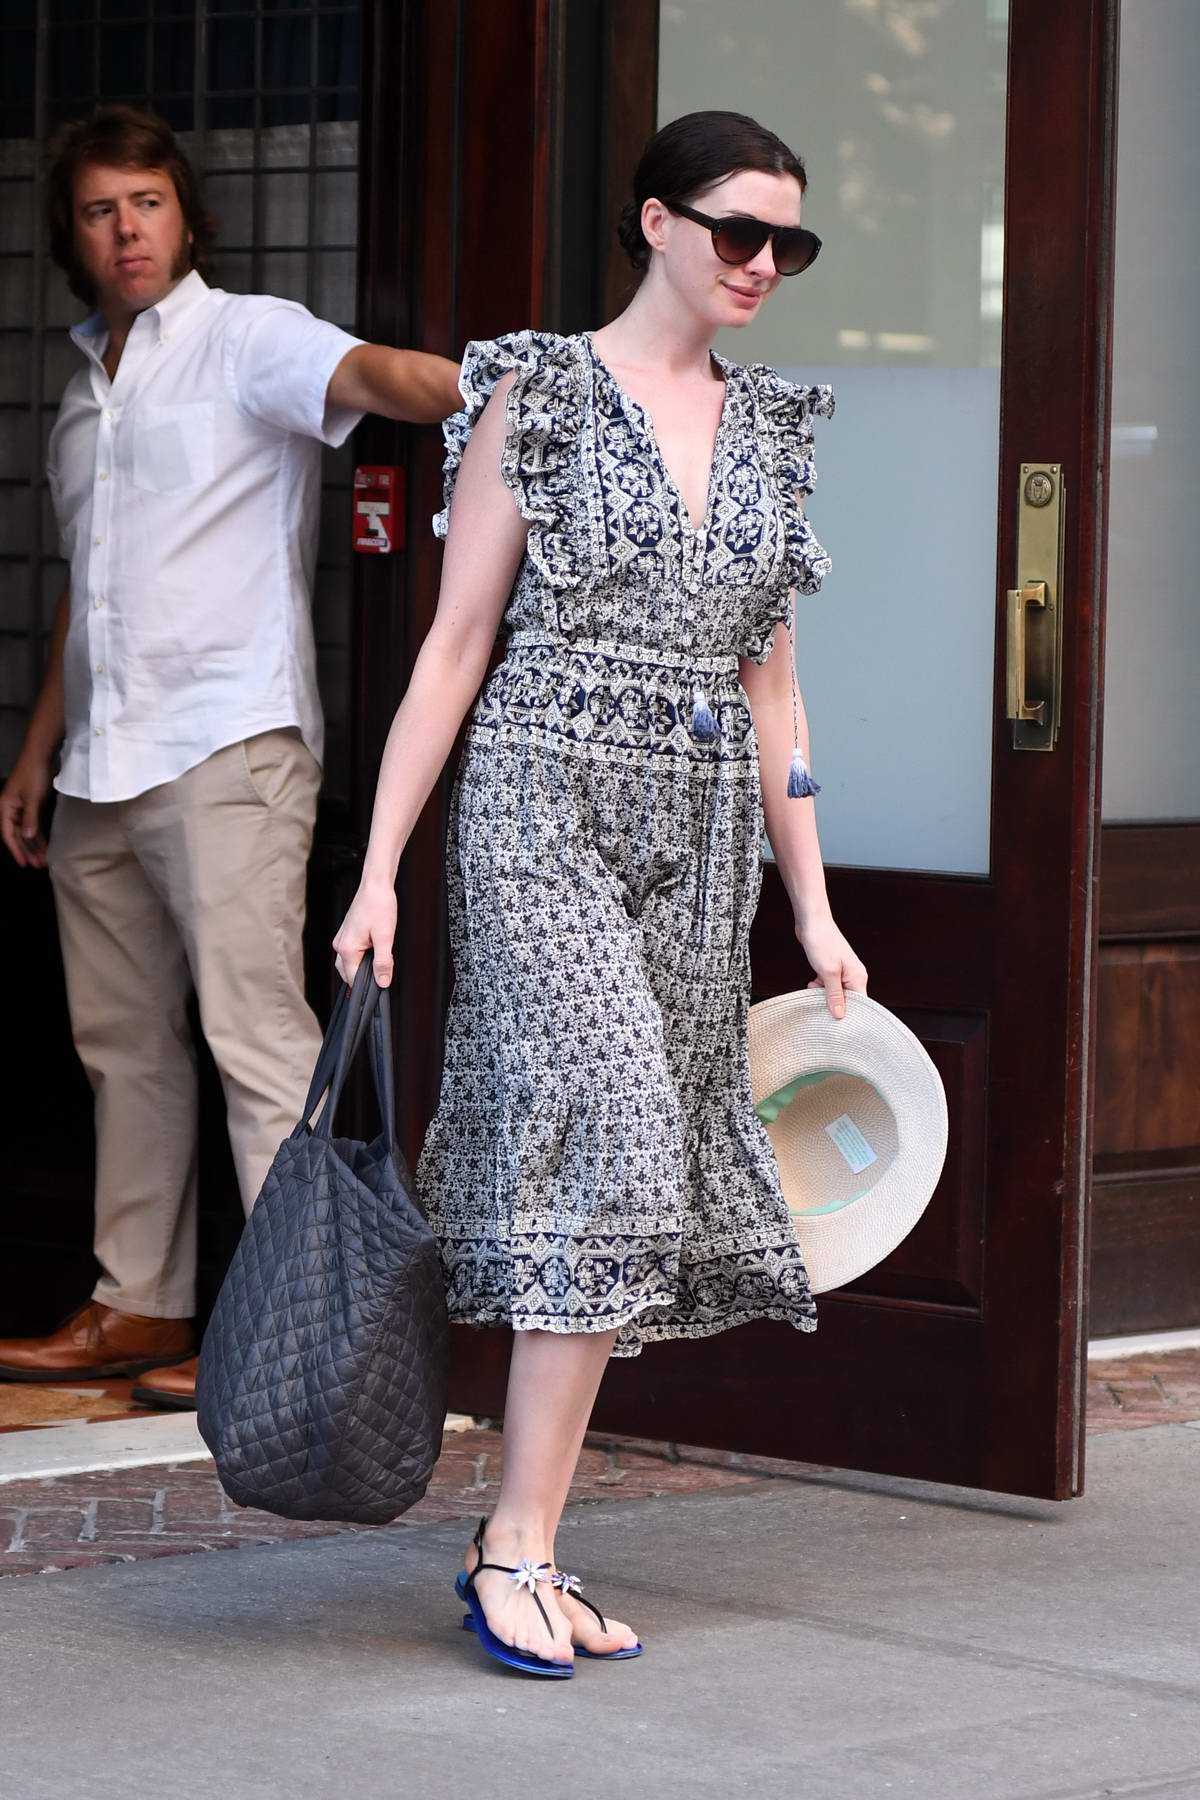 Anne Hathaway leaving her hotel while heading to a Photoshoot in New York